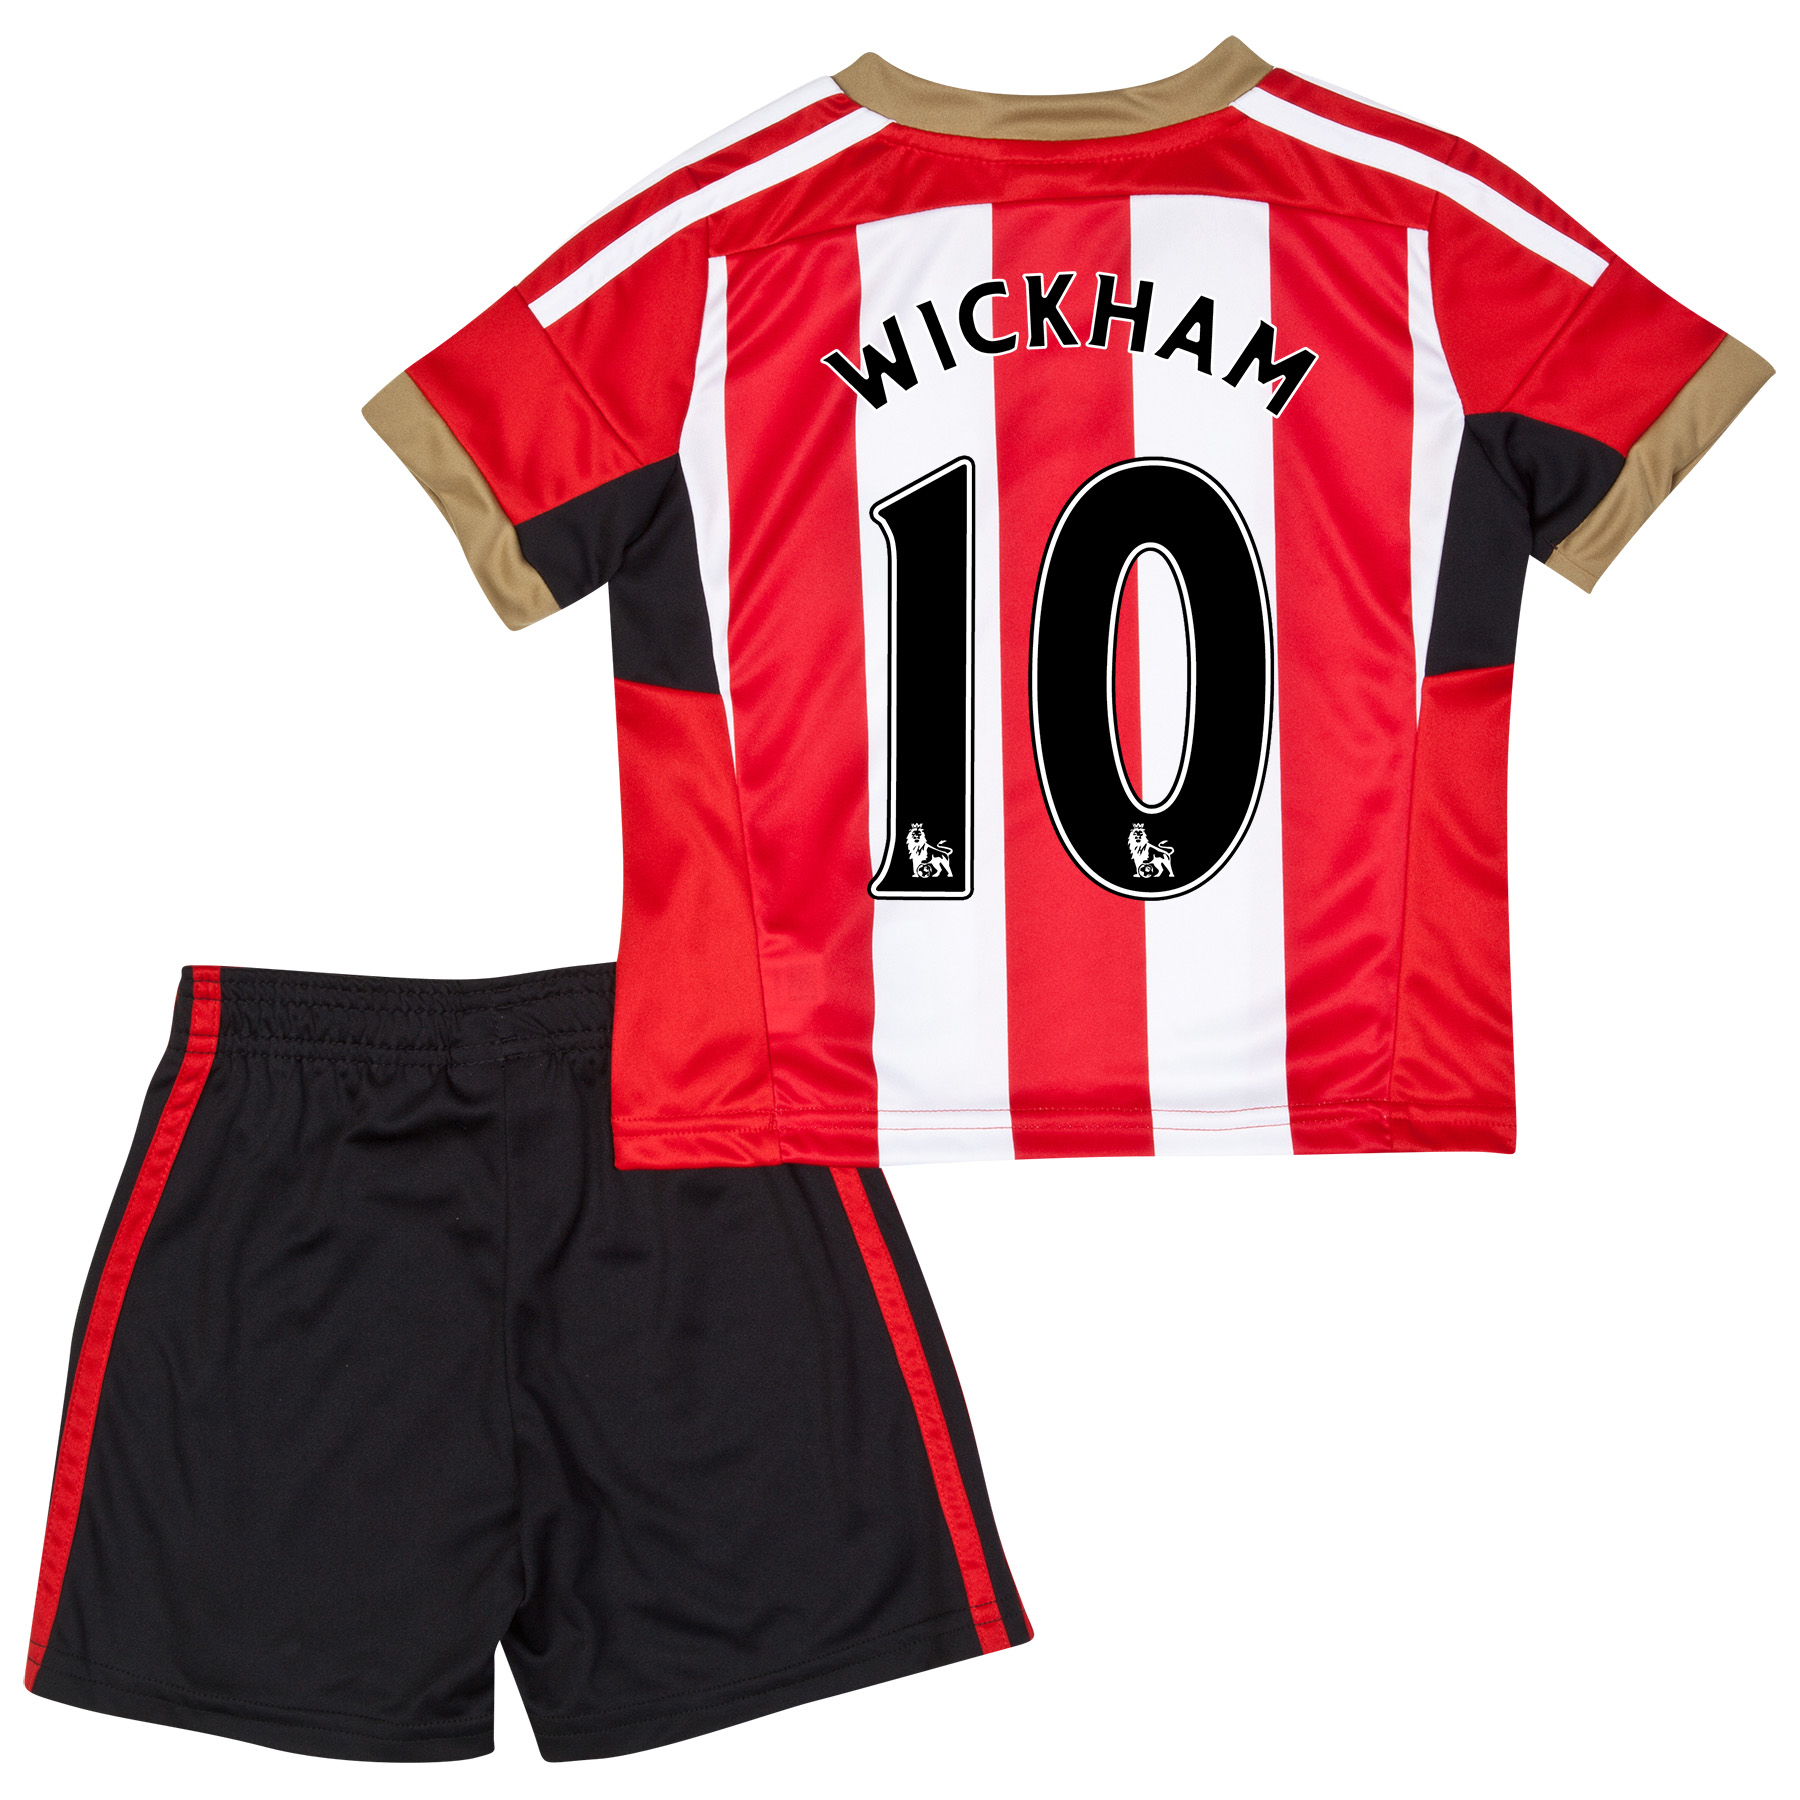 Sunderland Mini Kit 2014/15 Red with Wickham 10 printing